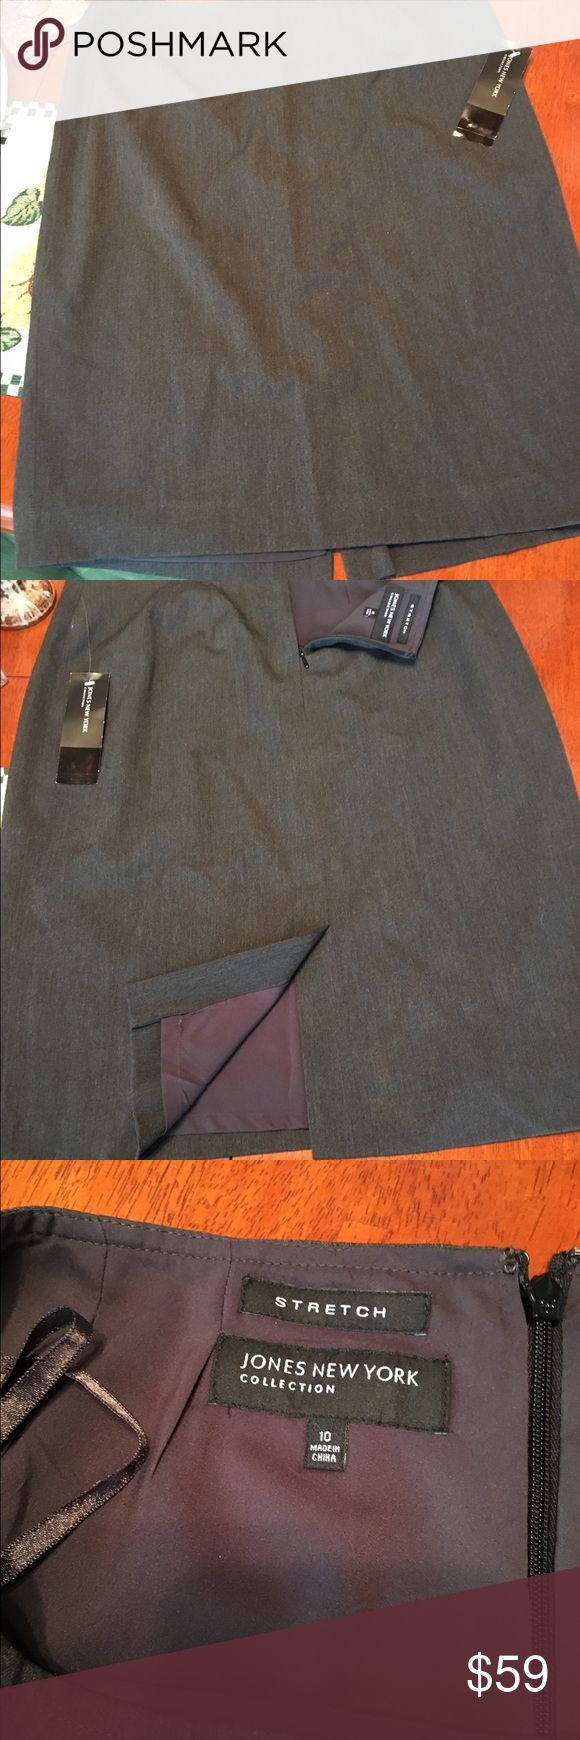 NEW!! Jones NY Collection Stretch Charcoal Skirt NWT Charcoal Grey lined skirt with back zipper and back slit. Skirt is polyester, rayon & spandex. Lining is 100% polyester. DRY CLEAN ONLY. Perfect for the office. Jones New York Skirts Pencil